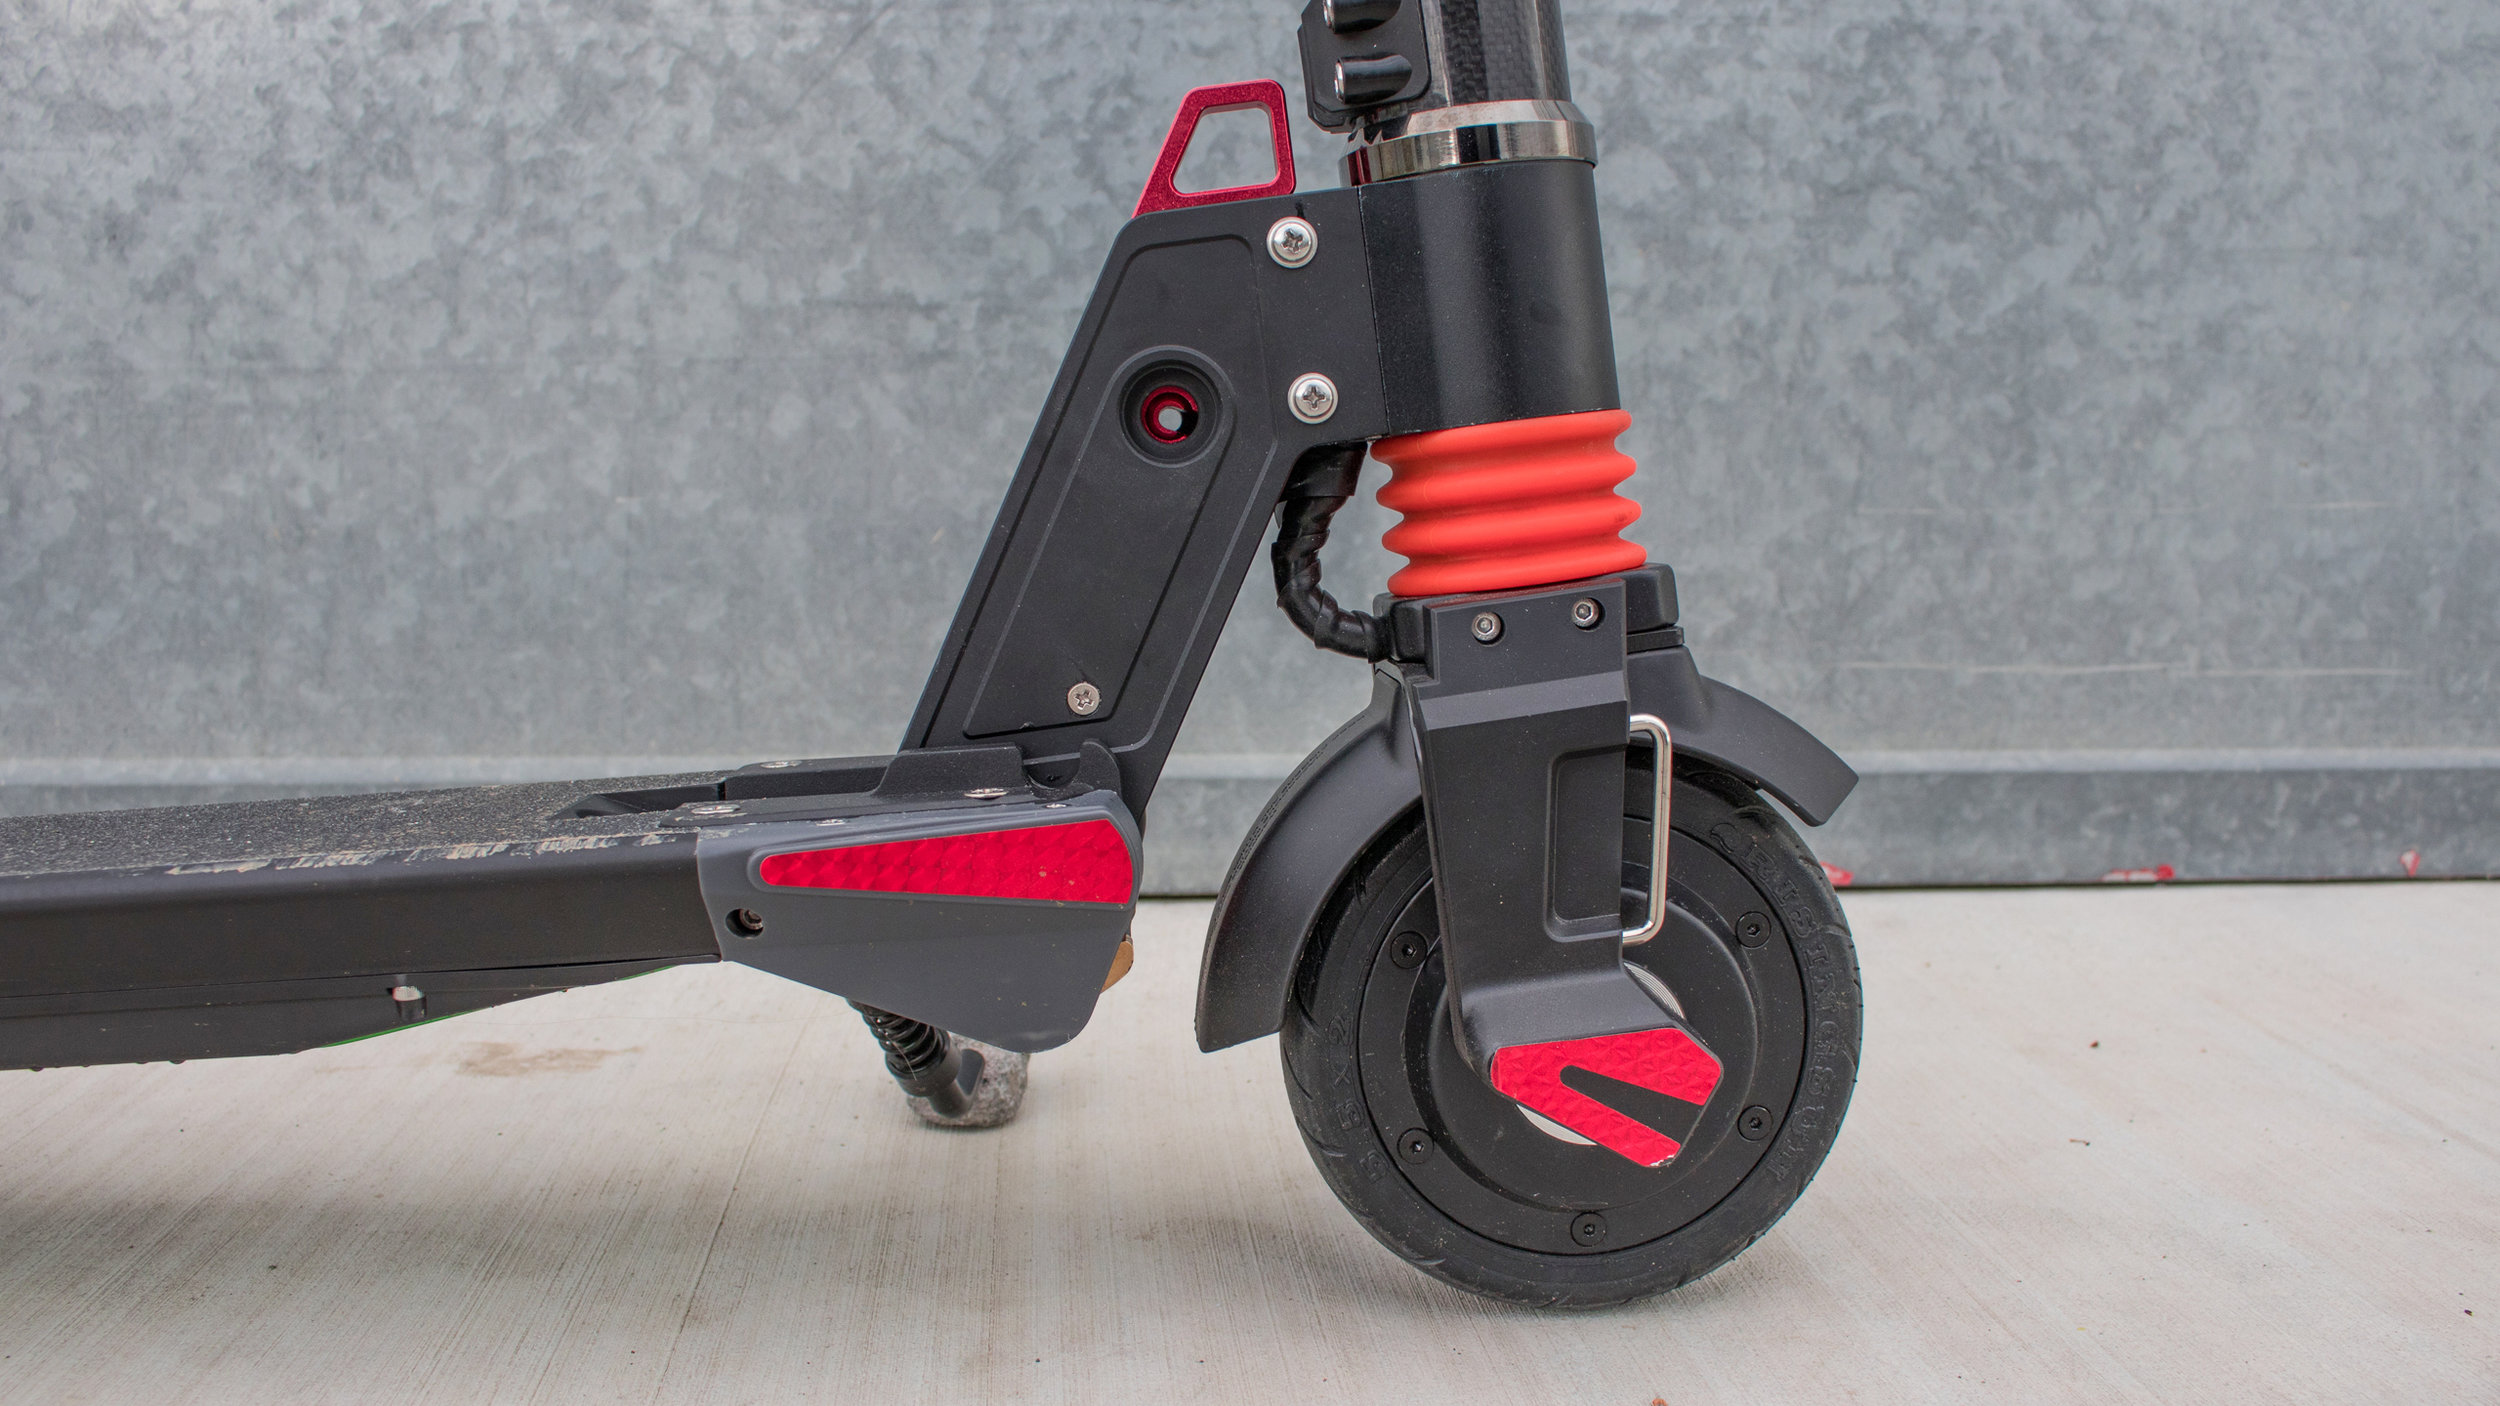 electrified-reviews-city-rover-s5-electric-scooter-review-suspension.jpg